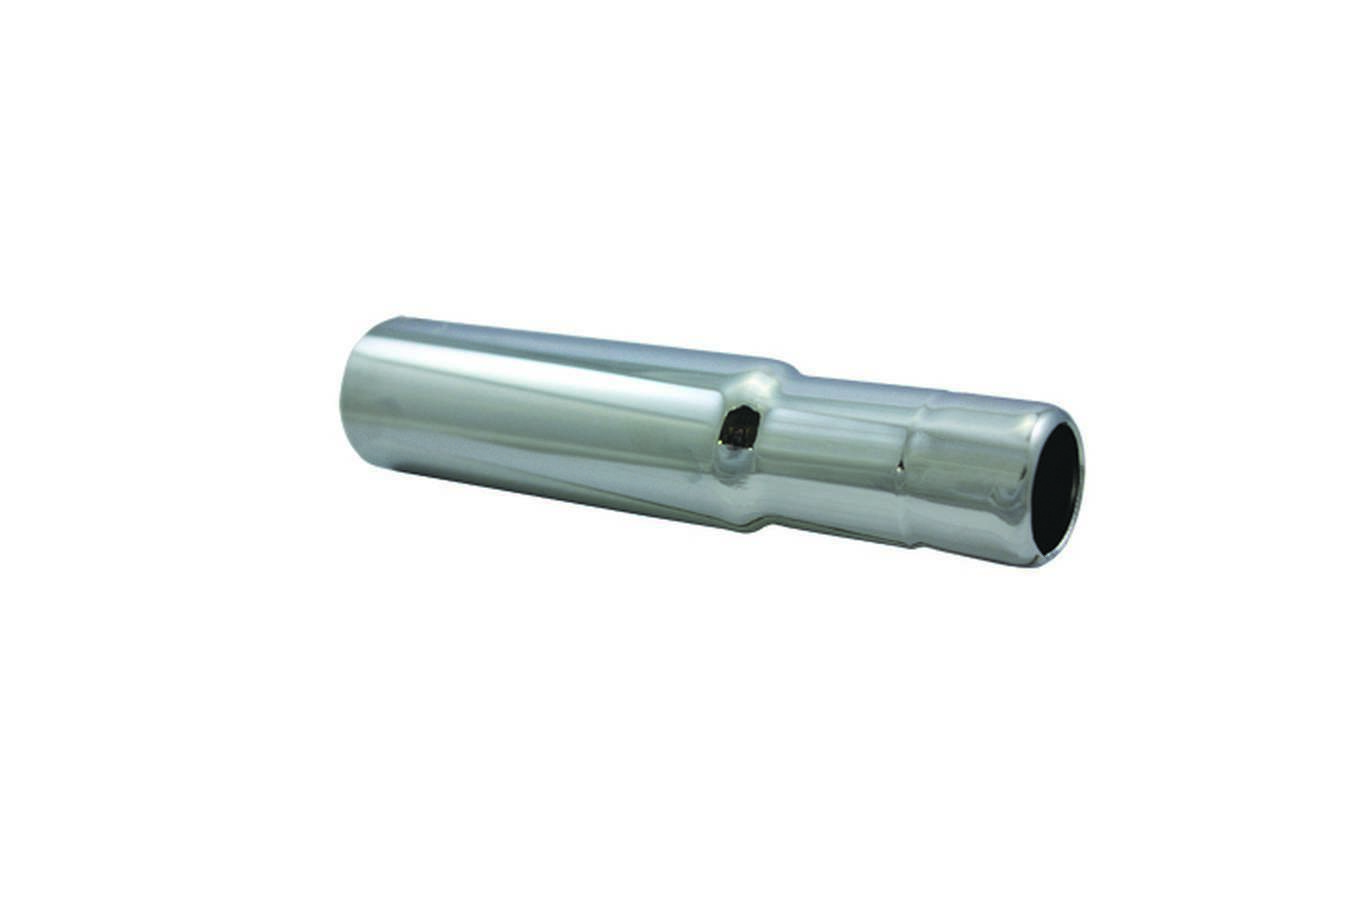 Specialty Products 7394 Oil Filler Tube, Push-In, Manifold Mount, 1-1/4 in to 1-1/2 in Manifold Hole, Steel, Chrome, Each